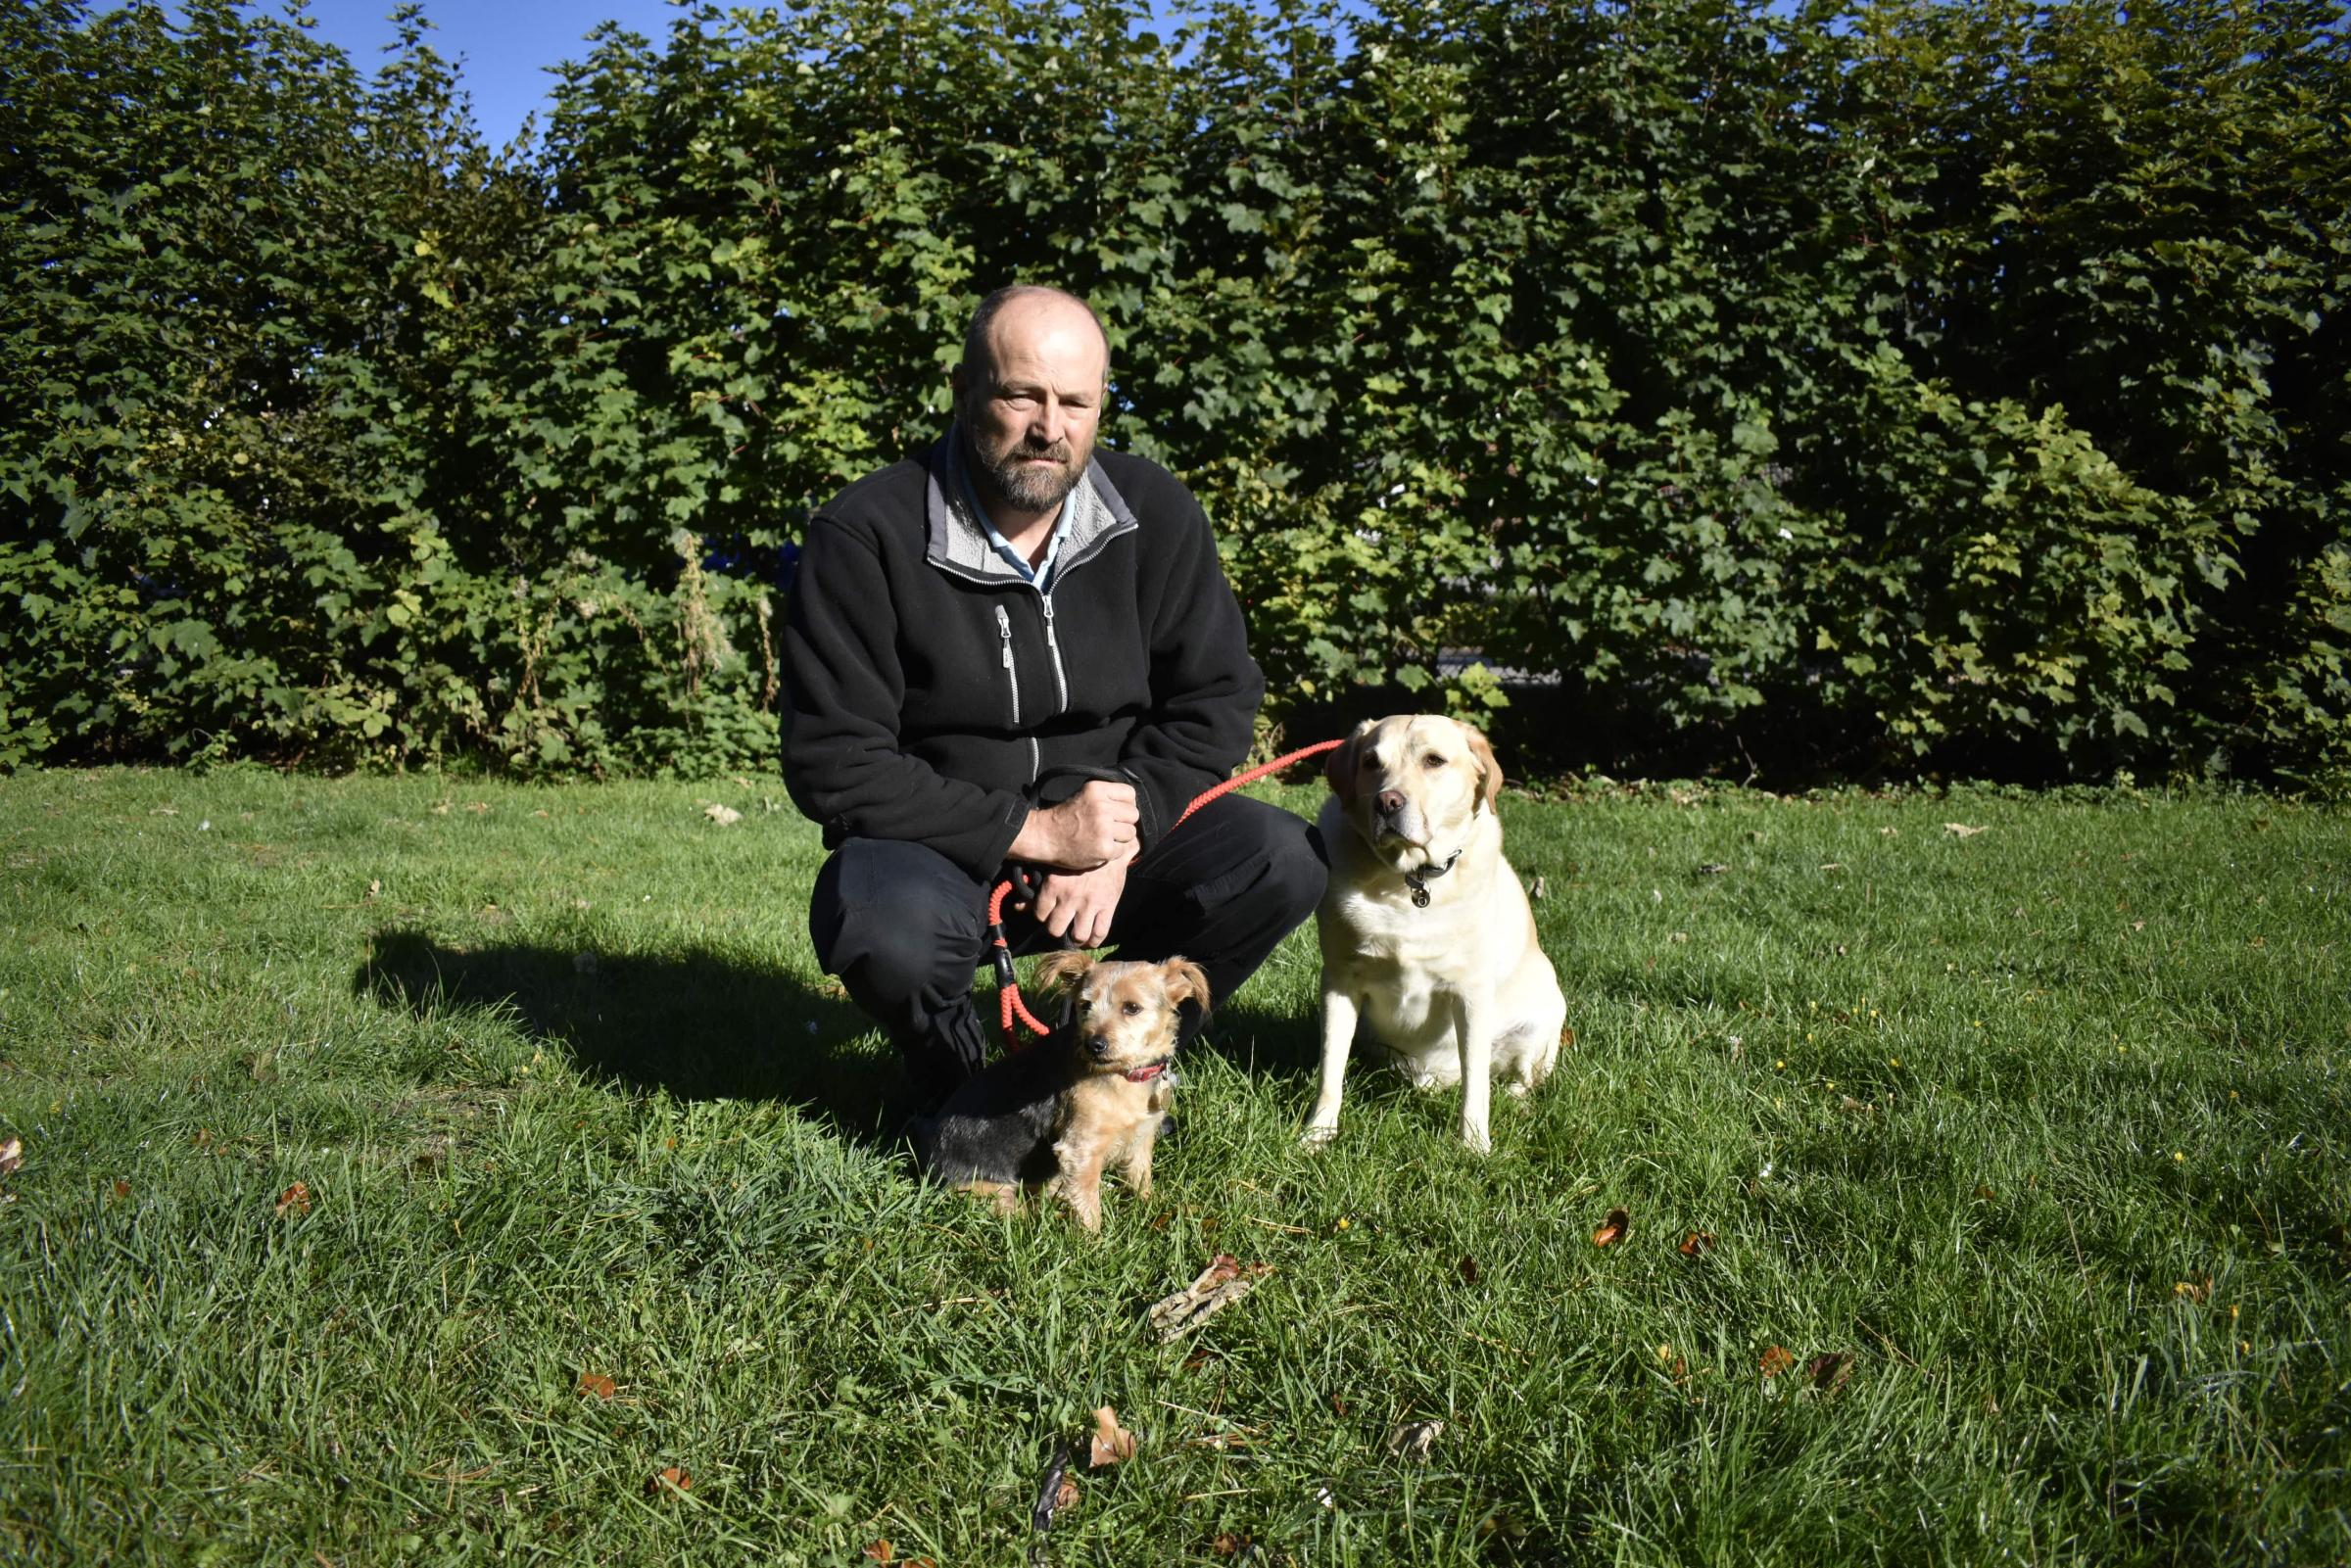 Image of: Rspca Inspector Test Valley Borough Council Animal Welfare Officer Rod Mason With His Dogs Rolly The Labrador Rochdale Online Rspca Praises Councils Animal Welfare Work With Top Awards